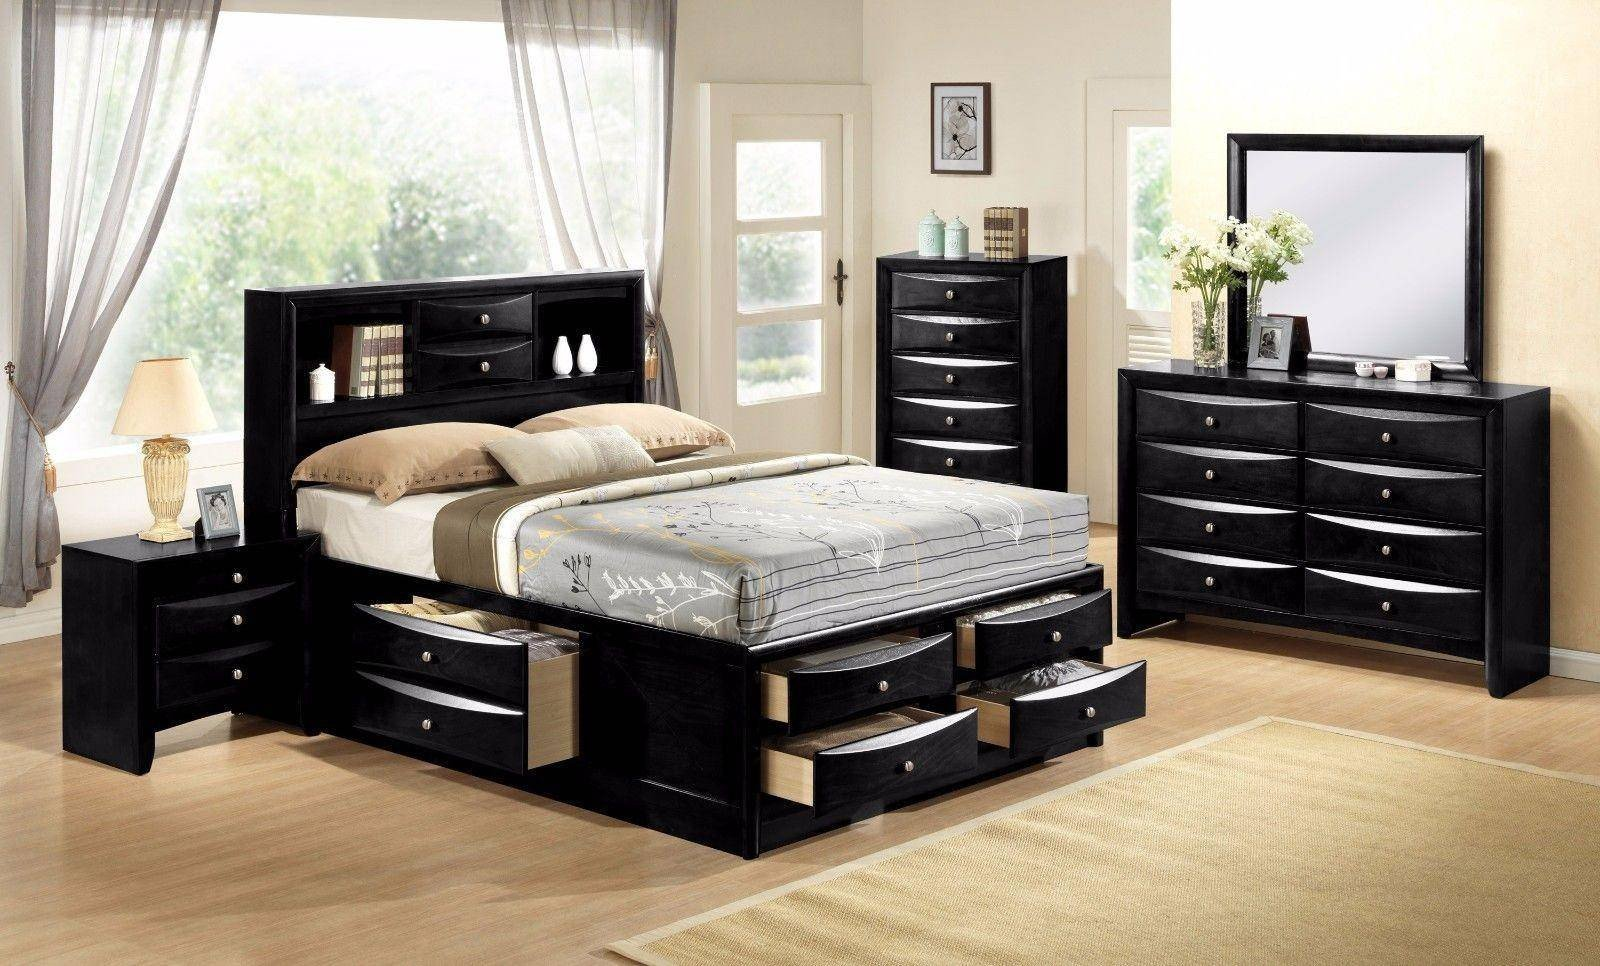 King Size Bedroom Set Unique Crown Mark B4285 Emily Modern Black Finish Storage King Size